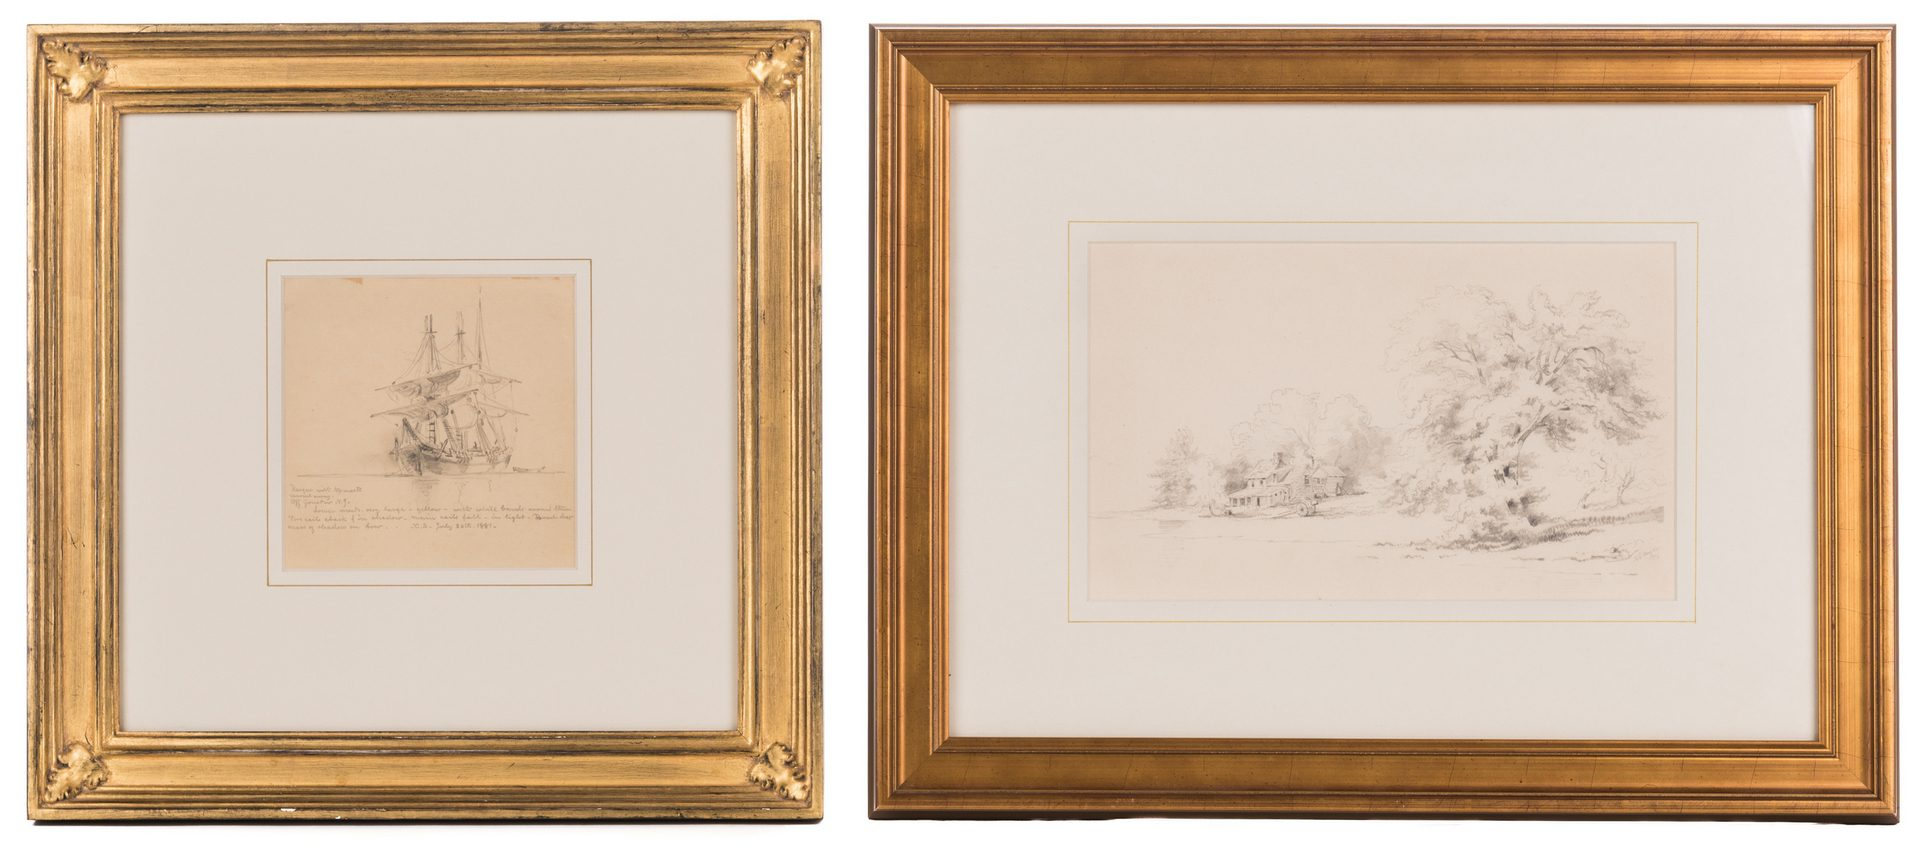 Lot 144: 2 Xanthus Russell Smith Pencil Drawings